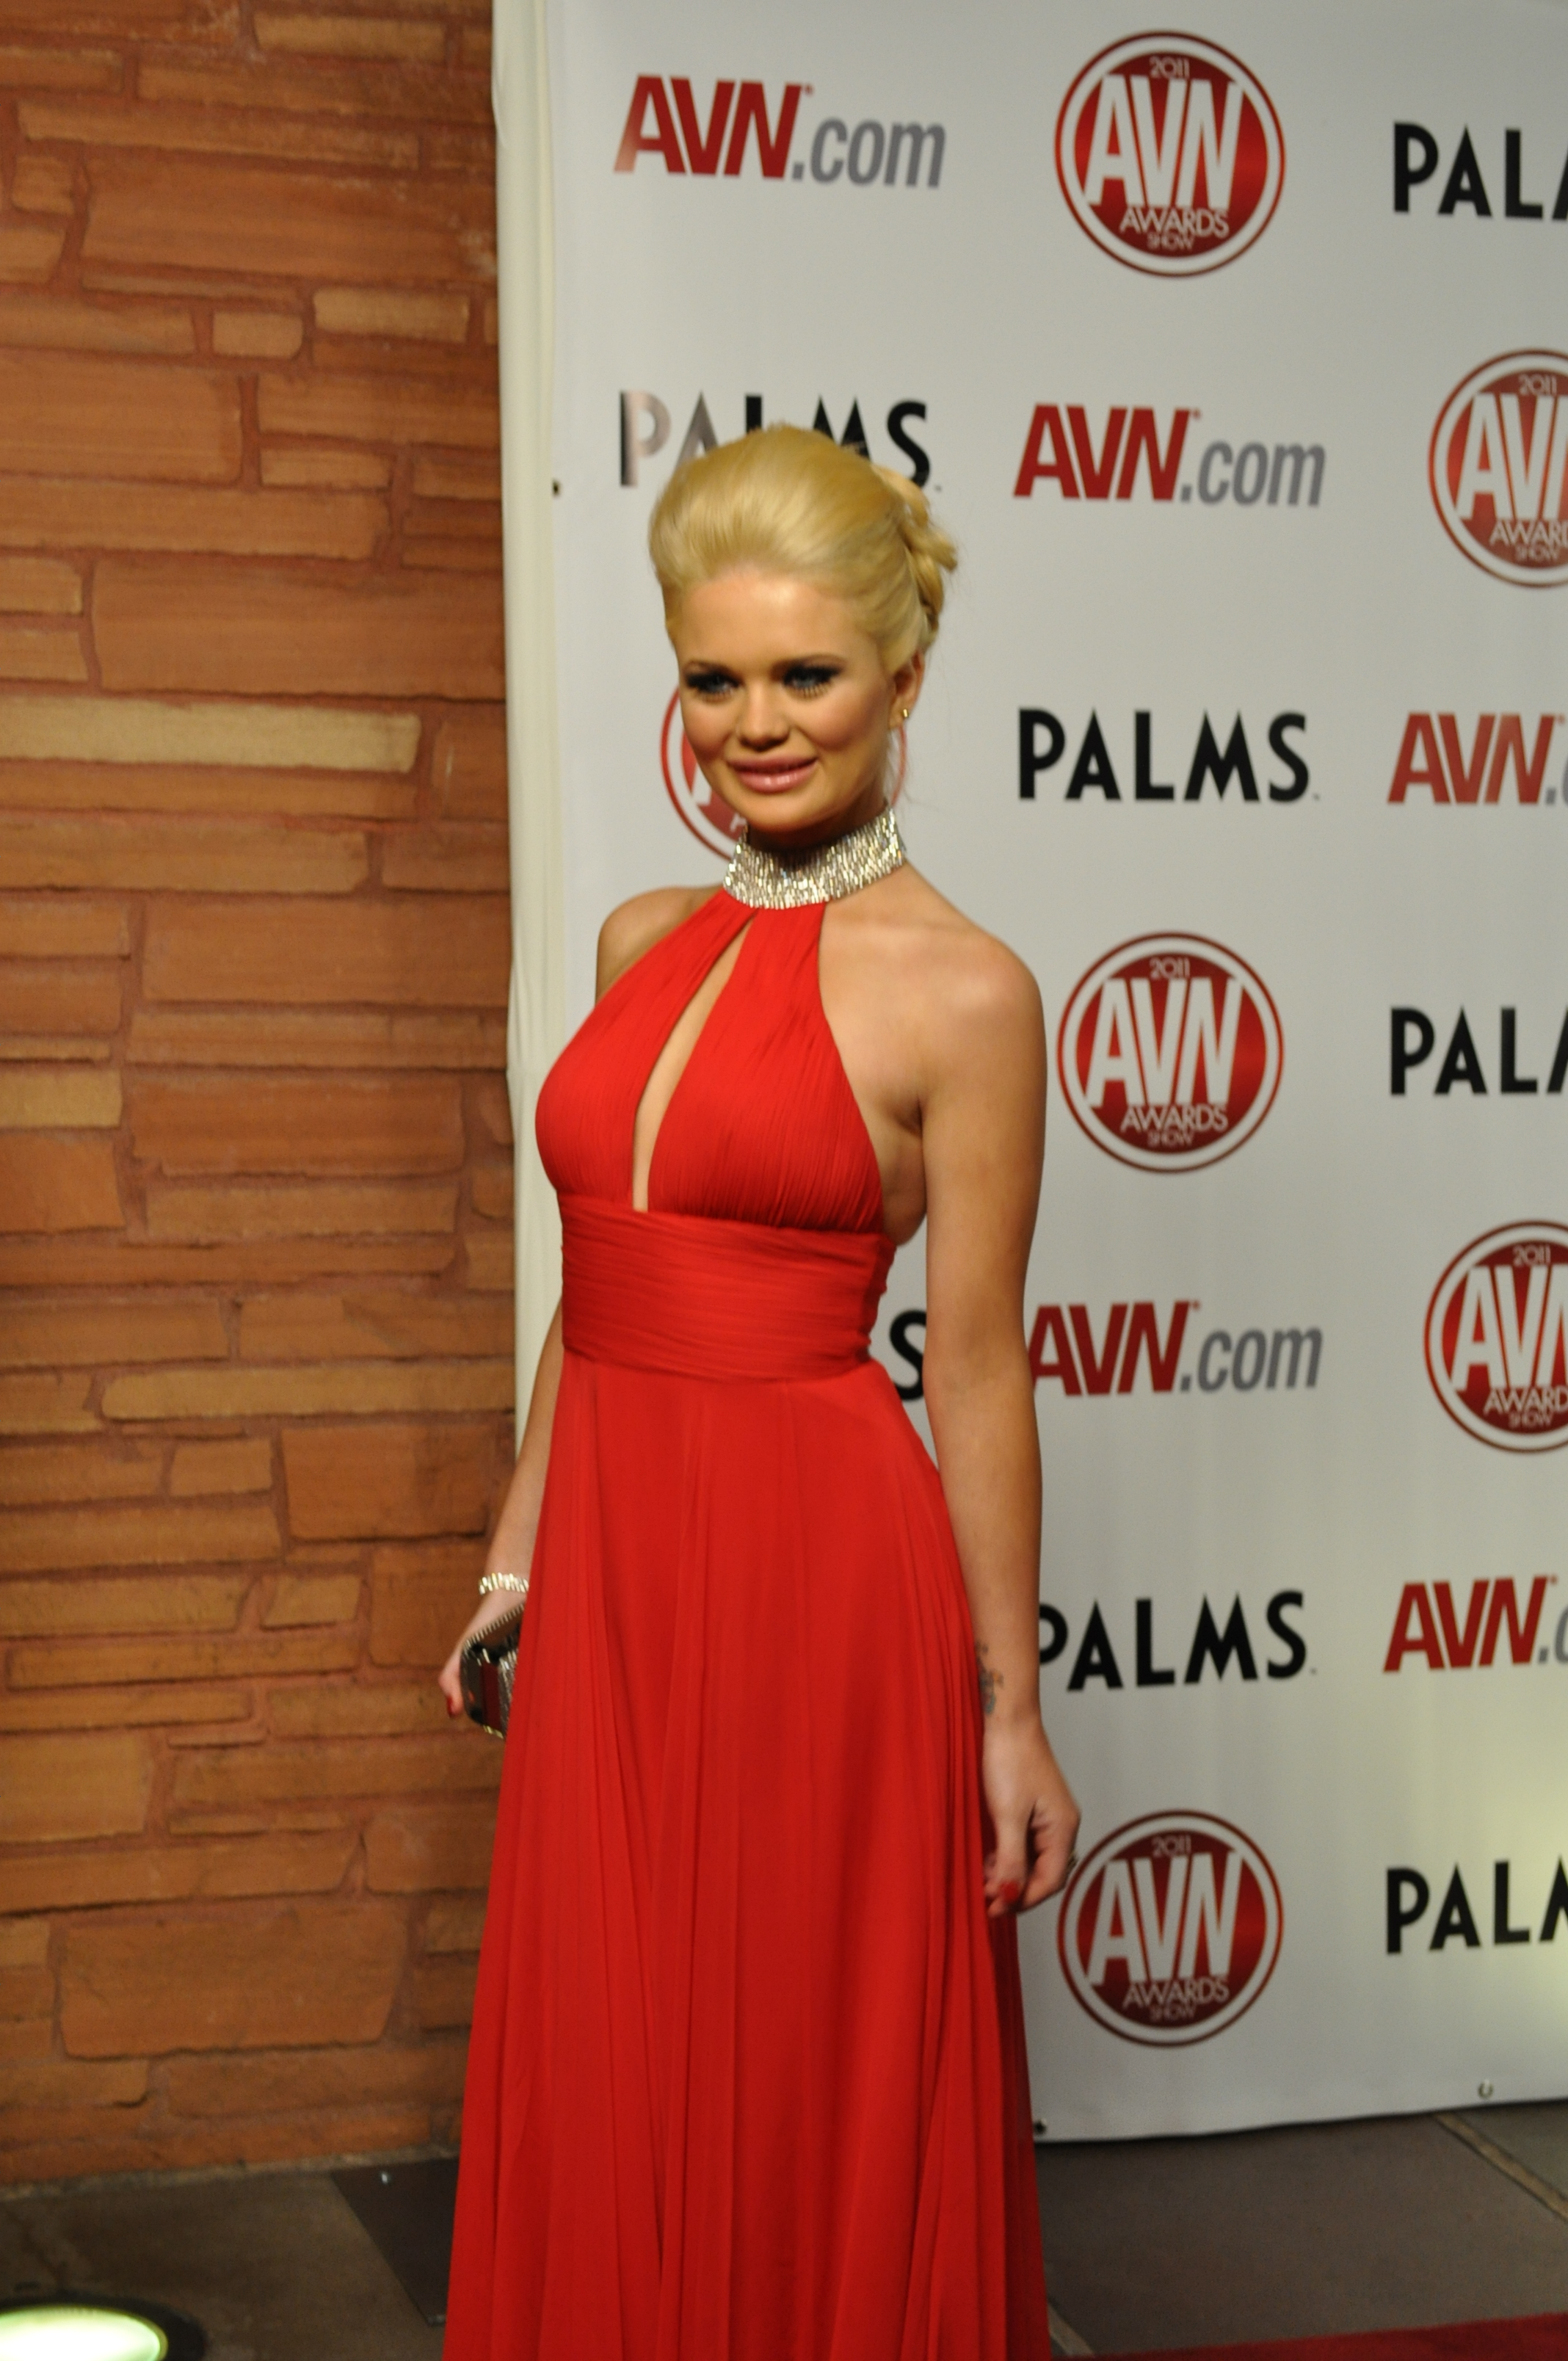 Alexis Ford file:alexis ford at avn awards 2011 1 - wikimedia commons